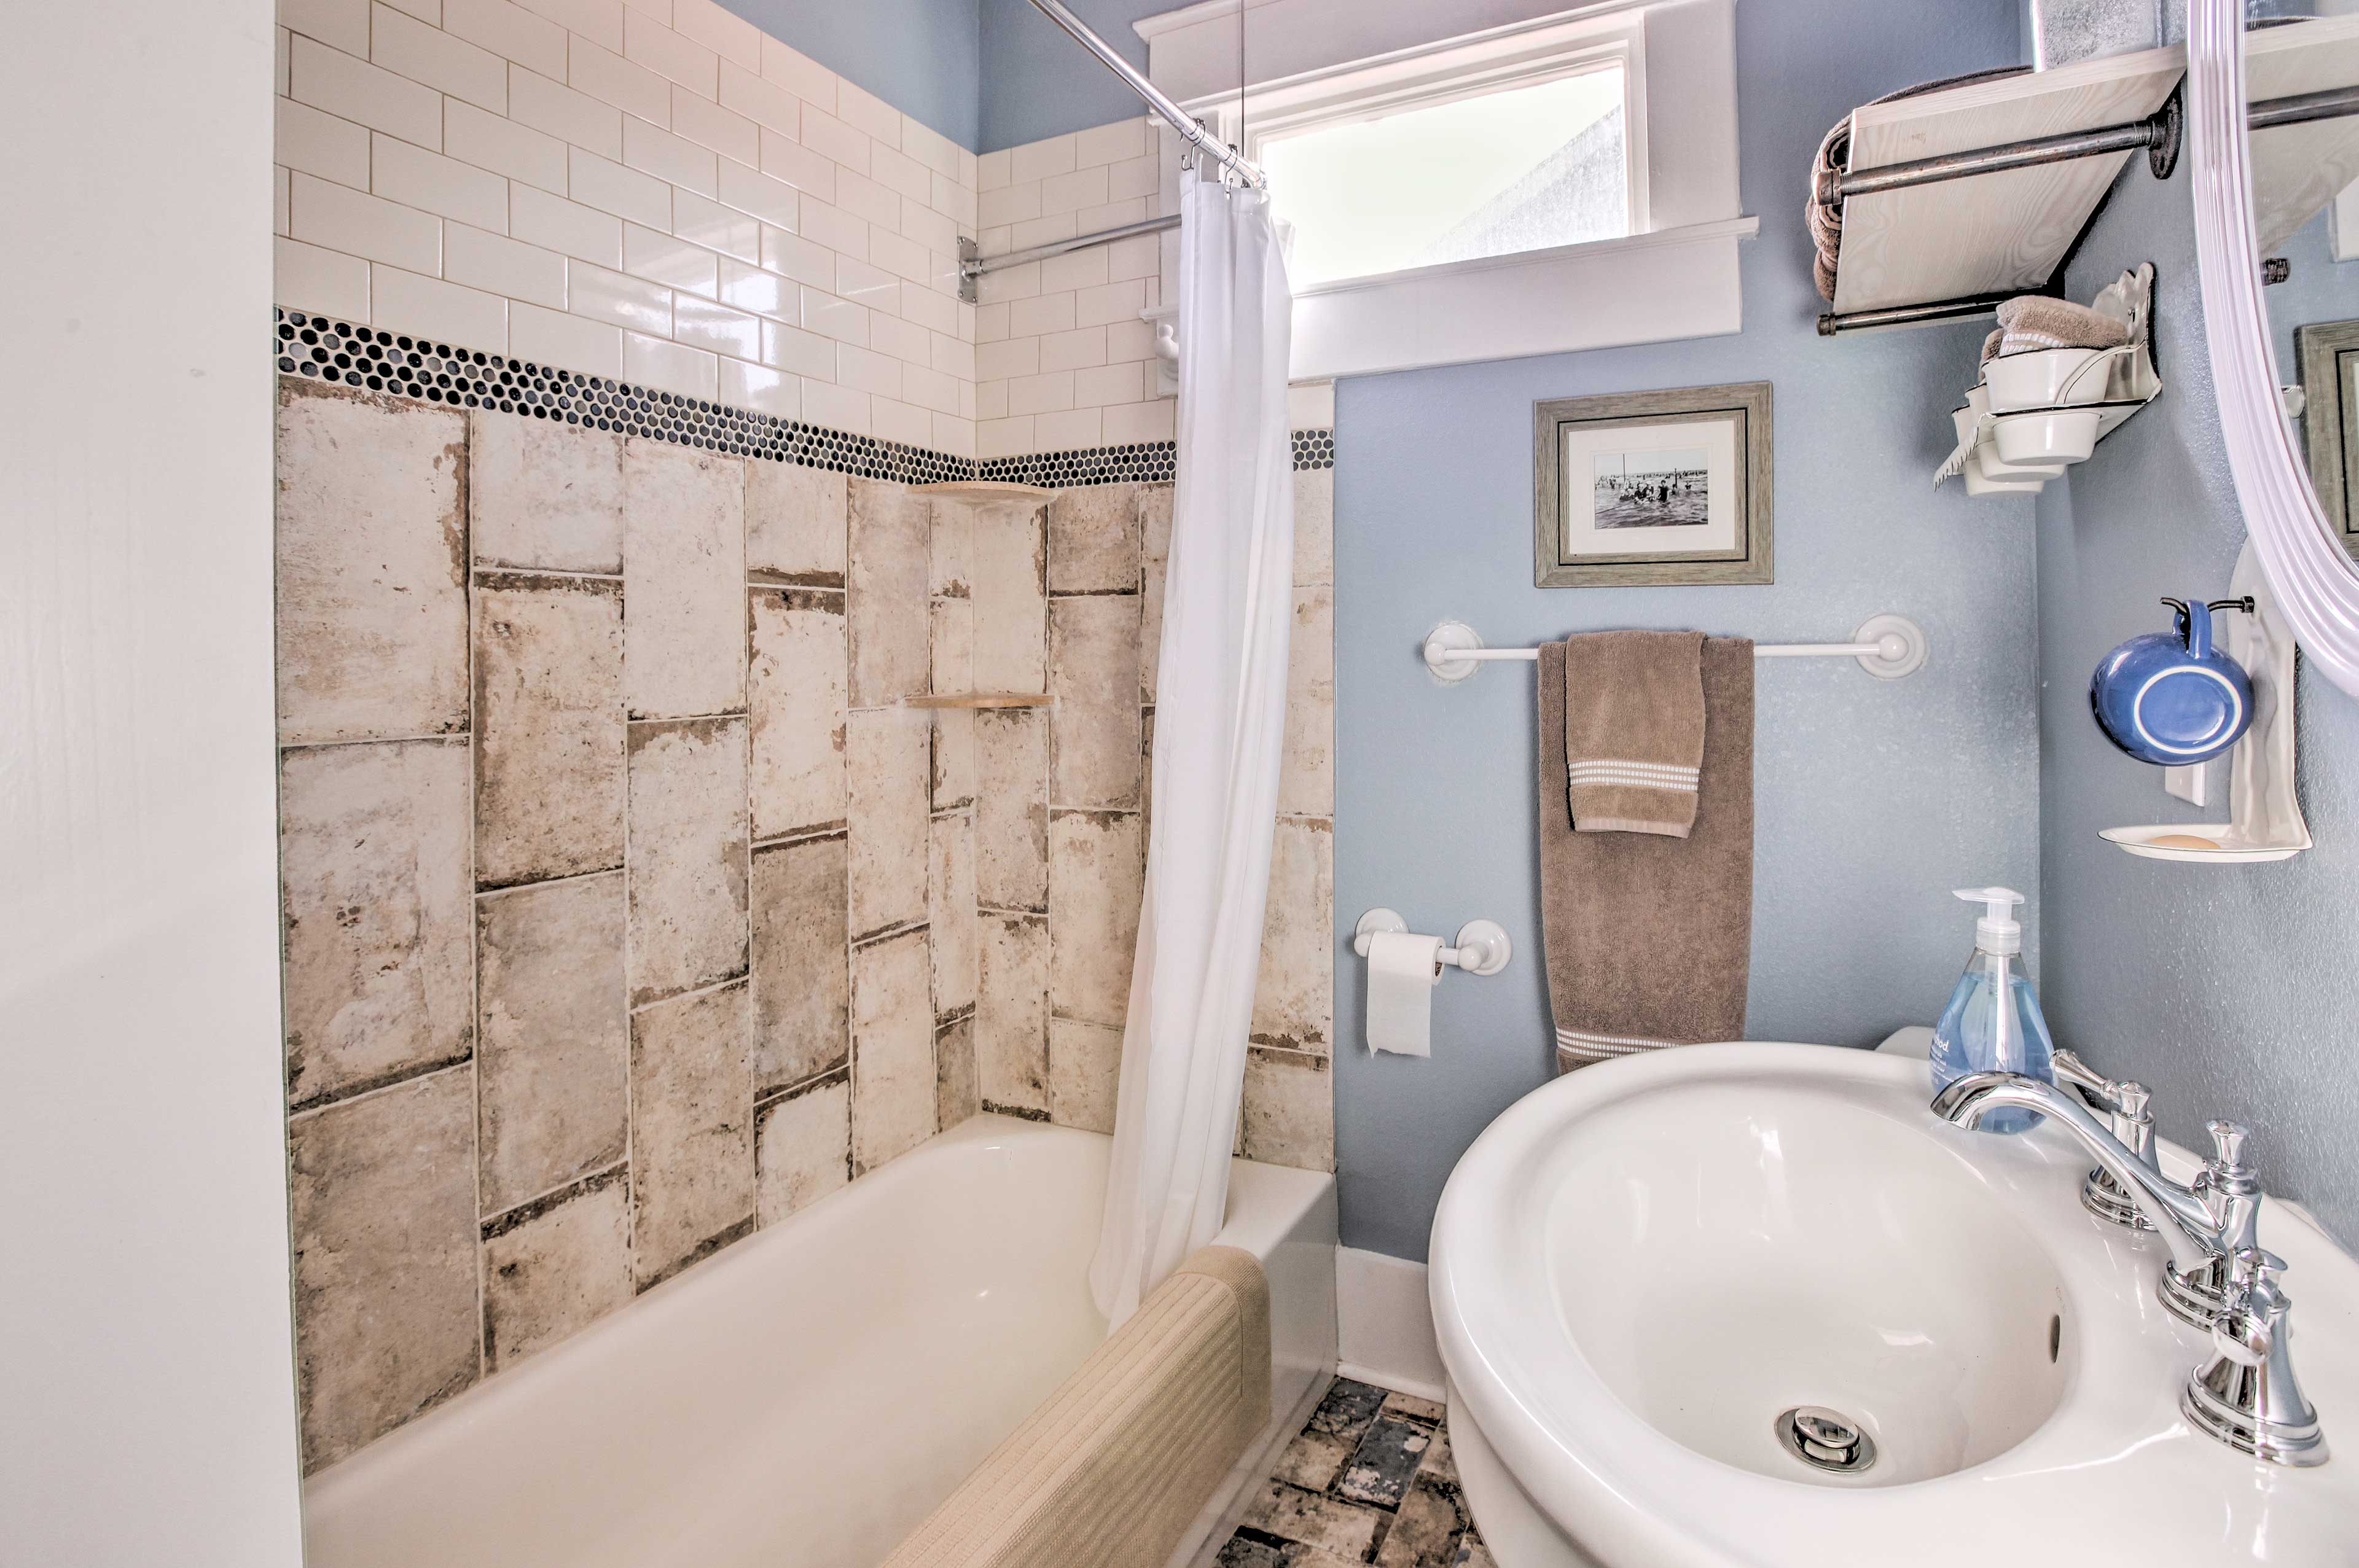 The full bathroom on the main floor offers a shower/tub combo.